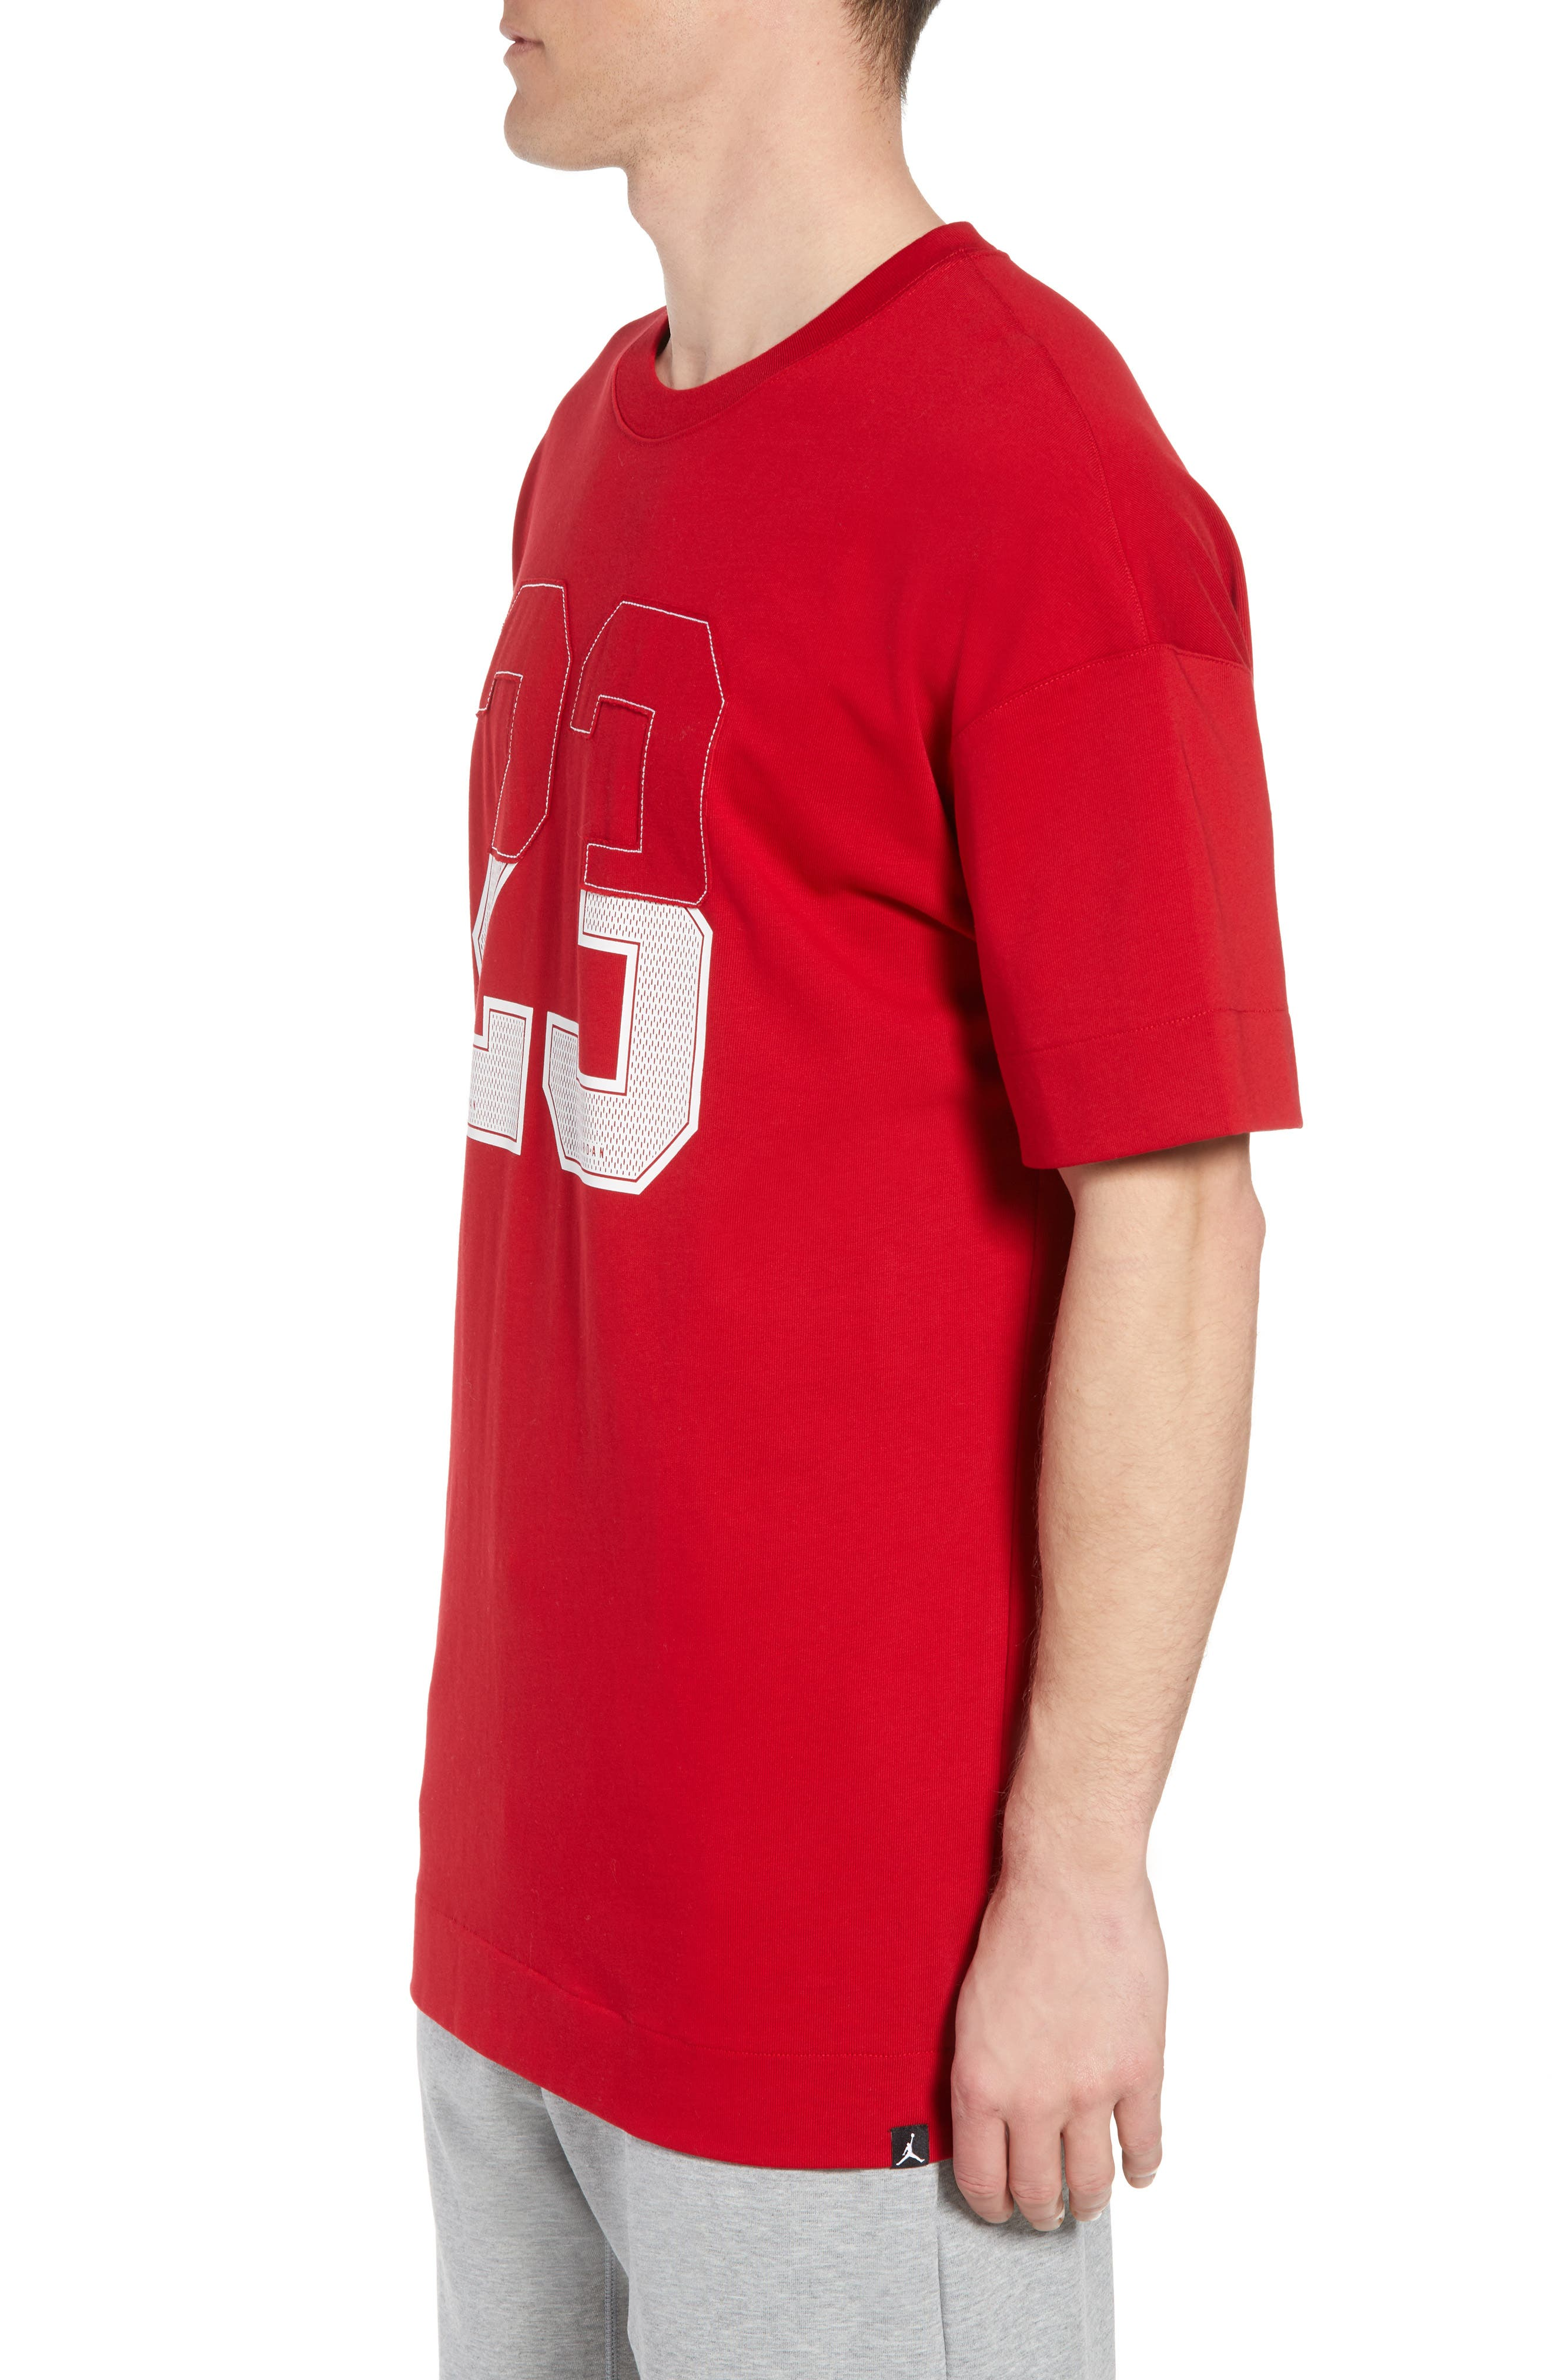 Nike Oversize 23 Graphic T-Shirt,                             Alternate thumbnail 3, color,                             GYM RED/ WHITE